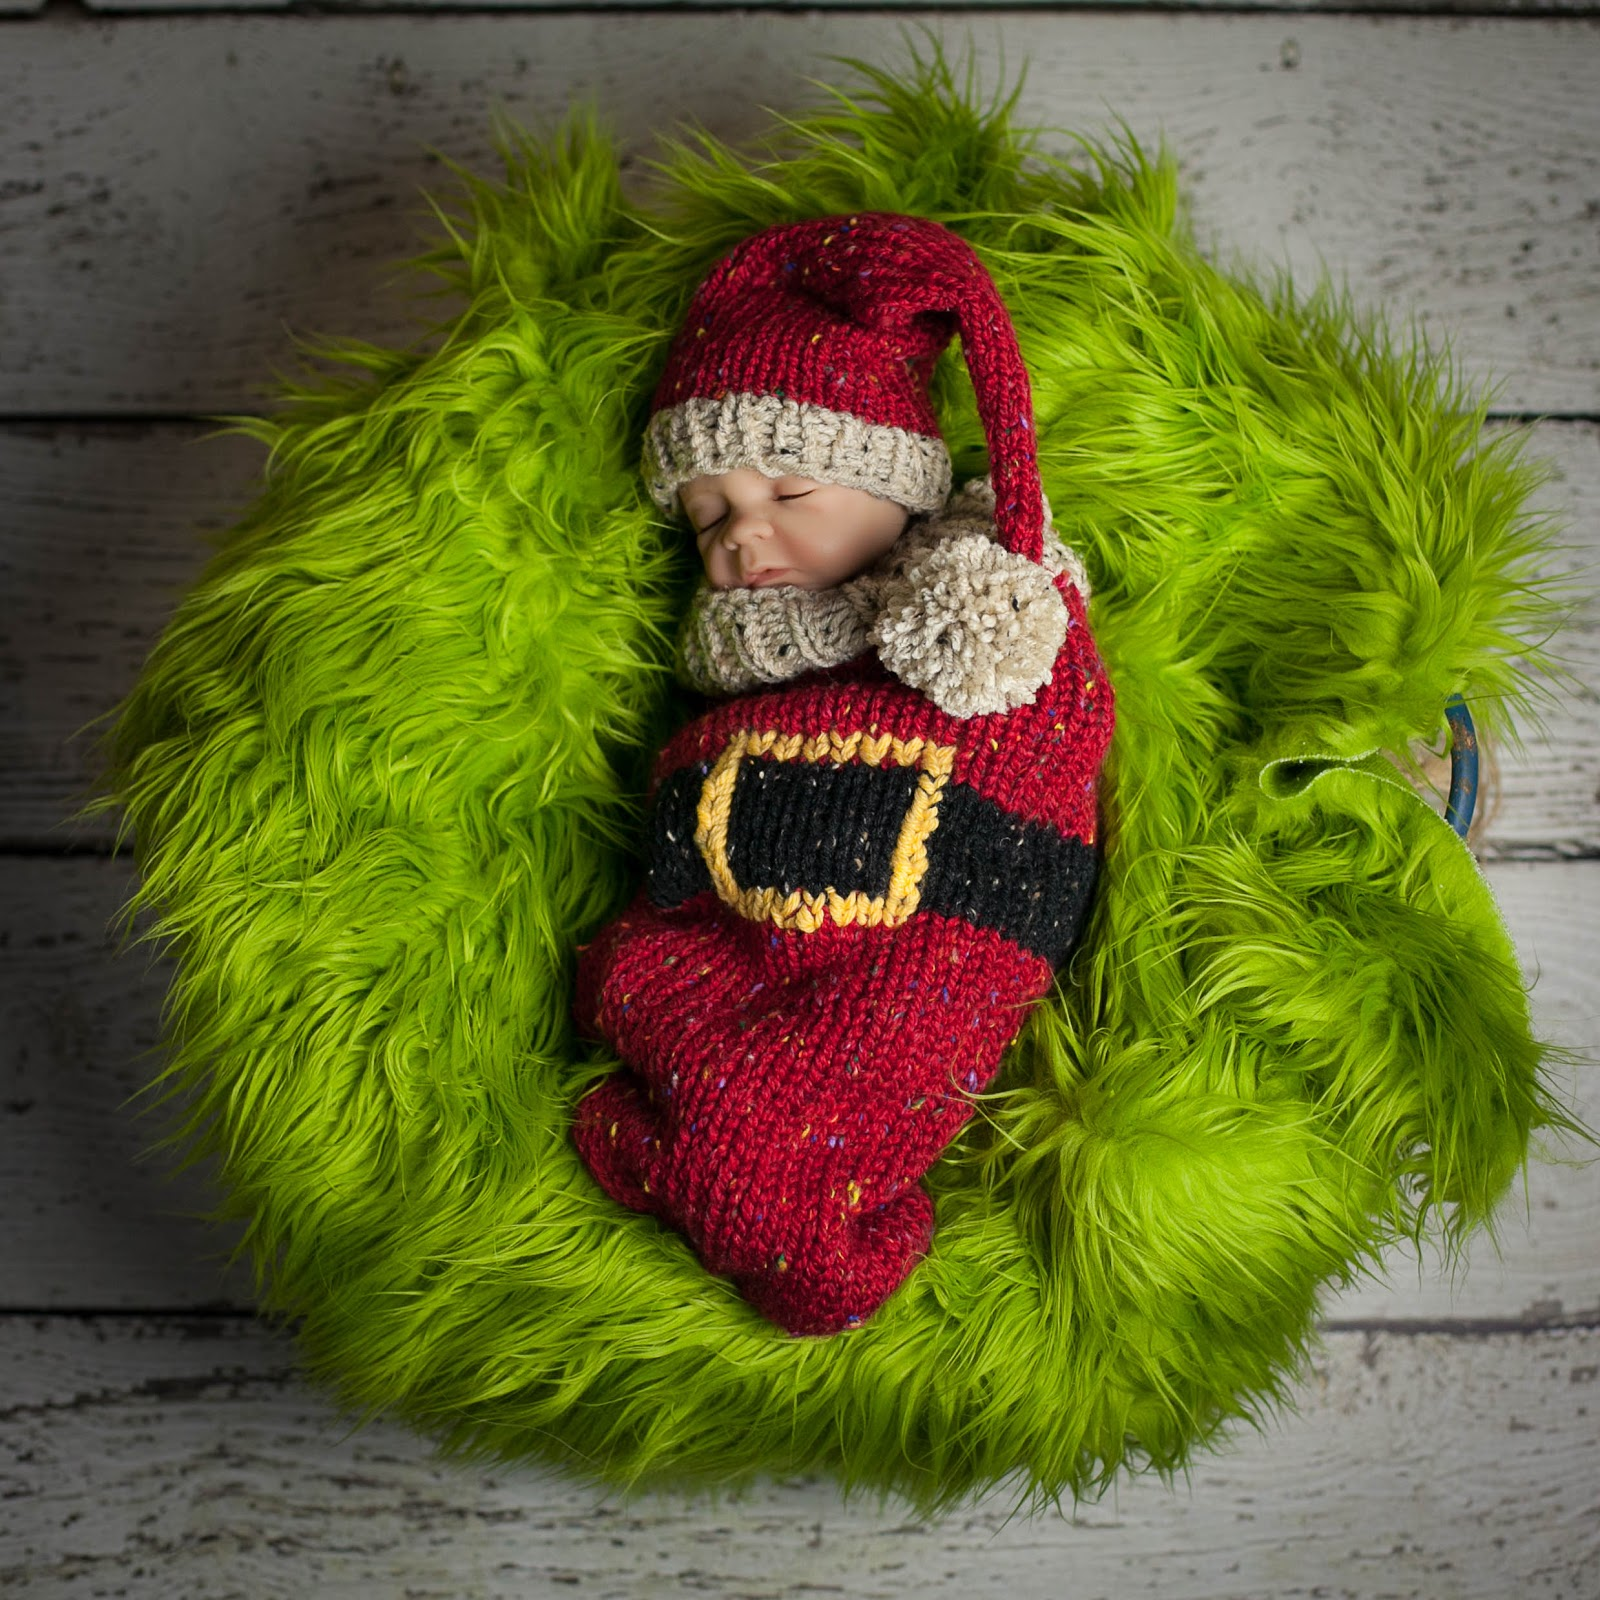 Adorable tweed Santa Cocoon and Elf Hat pattern for Newborn. This is a  quick loom knit and would make a great gift for new parents expecting a baby  before ... ecb1d170cae